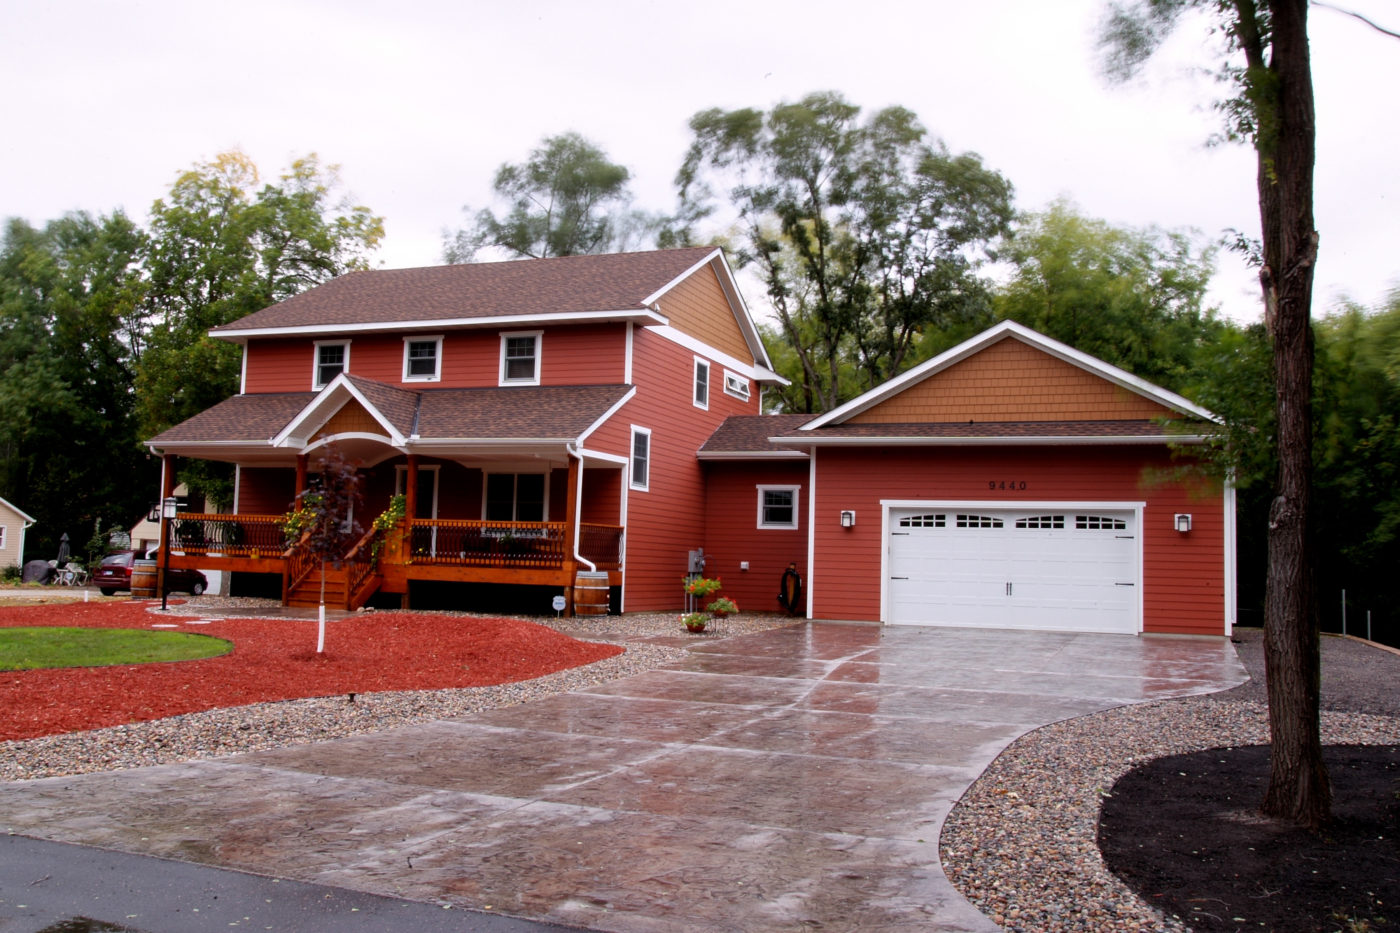 Minnesota green certified homes for sale greenlaw realty for Green certified home